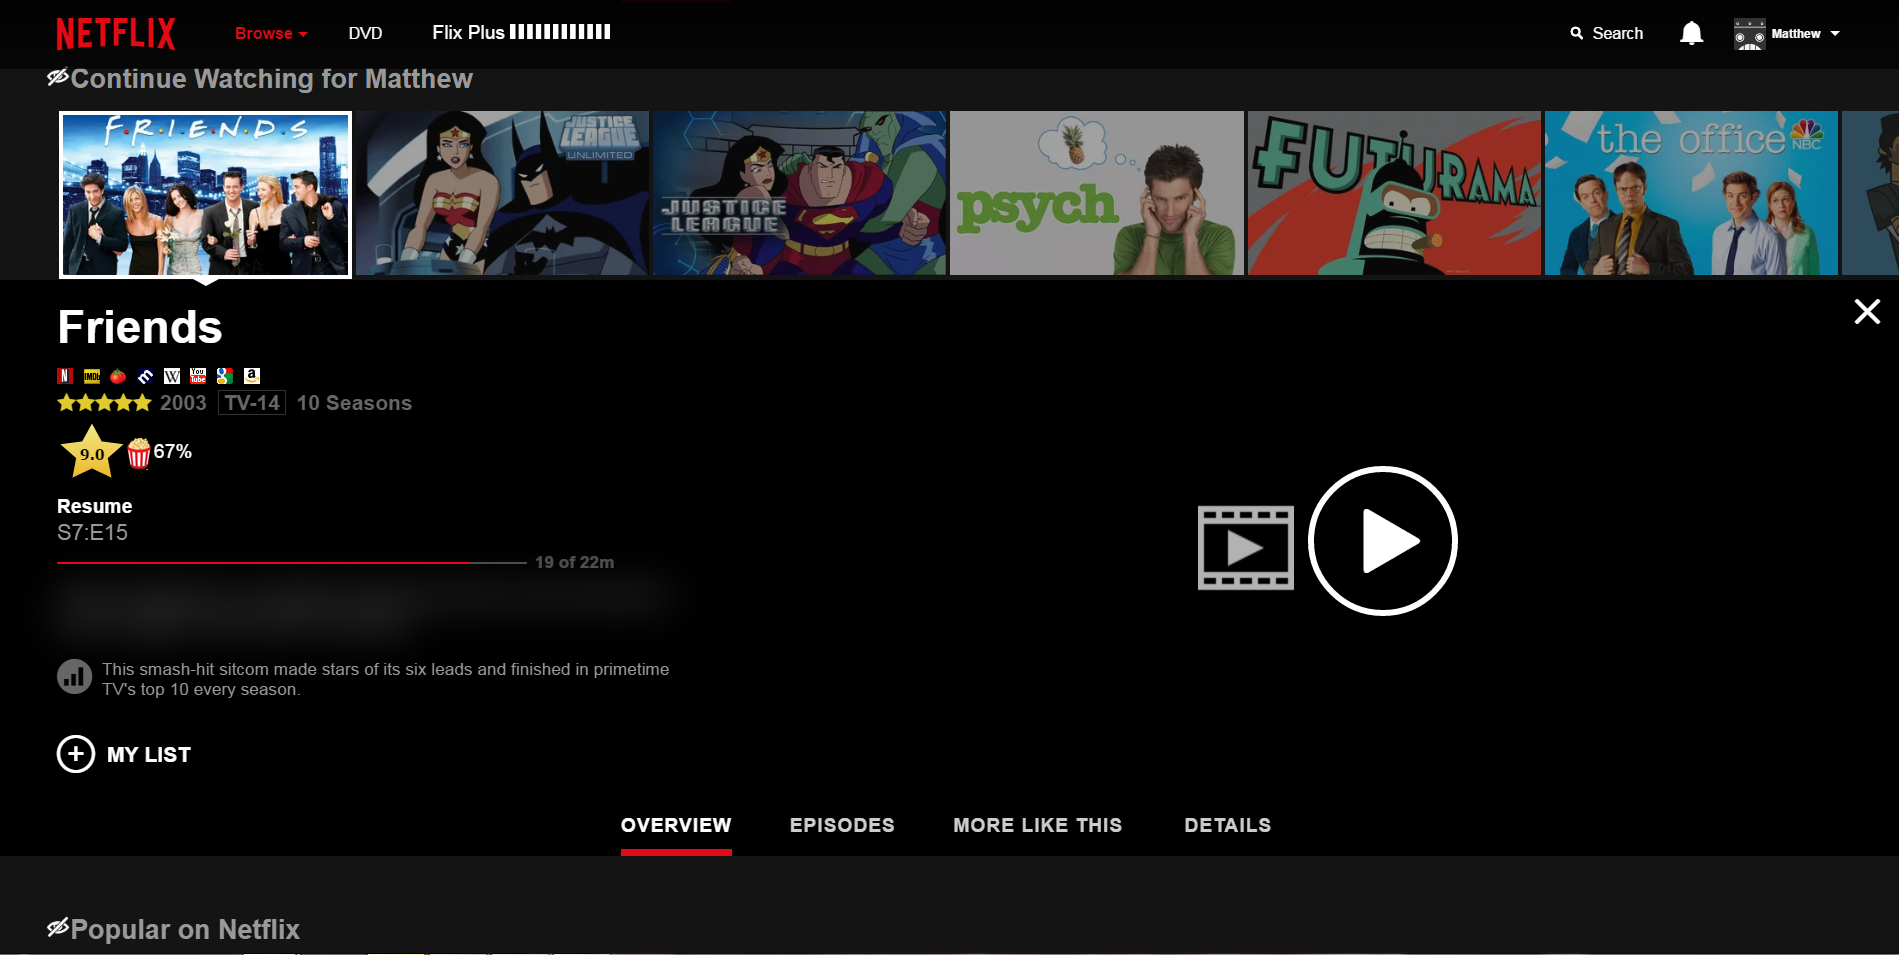 [US] Why does Netflix look like this? Its only on my PC